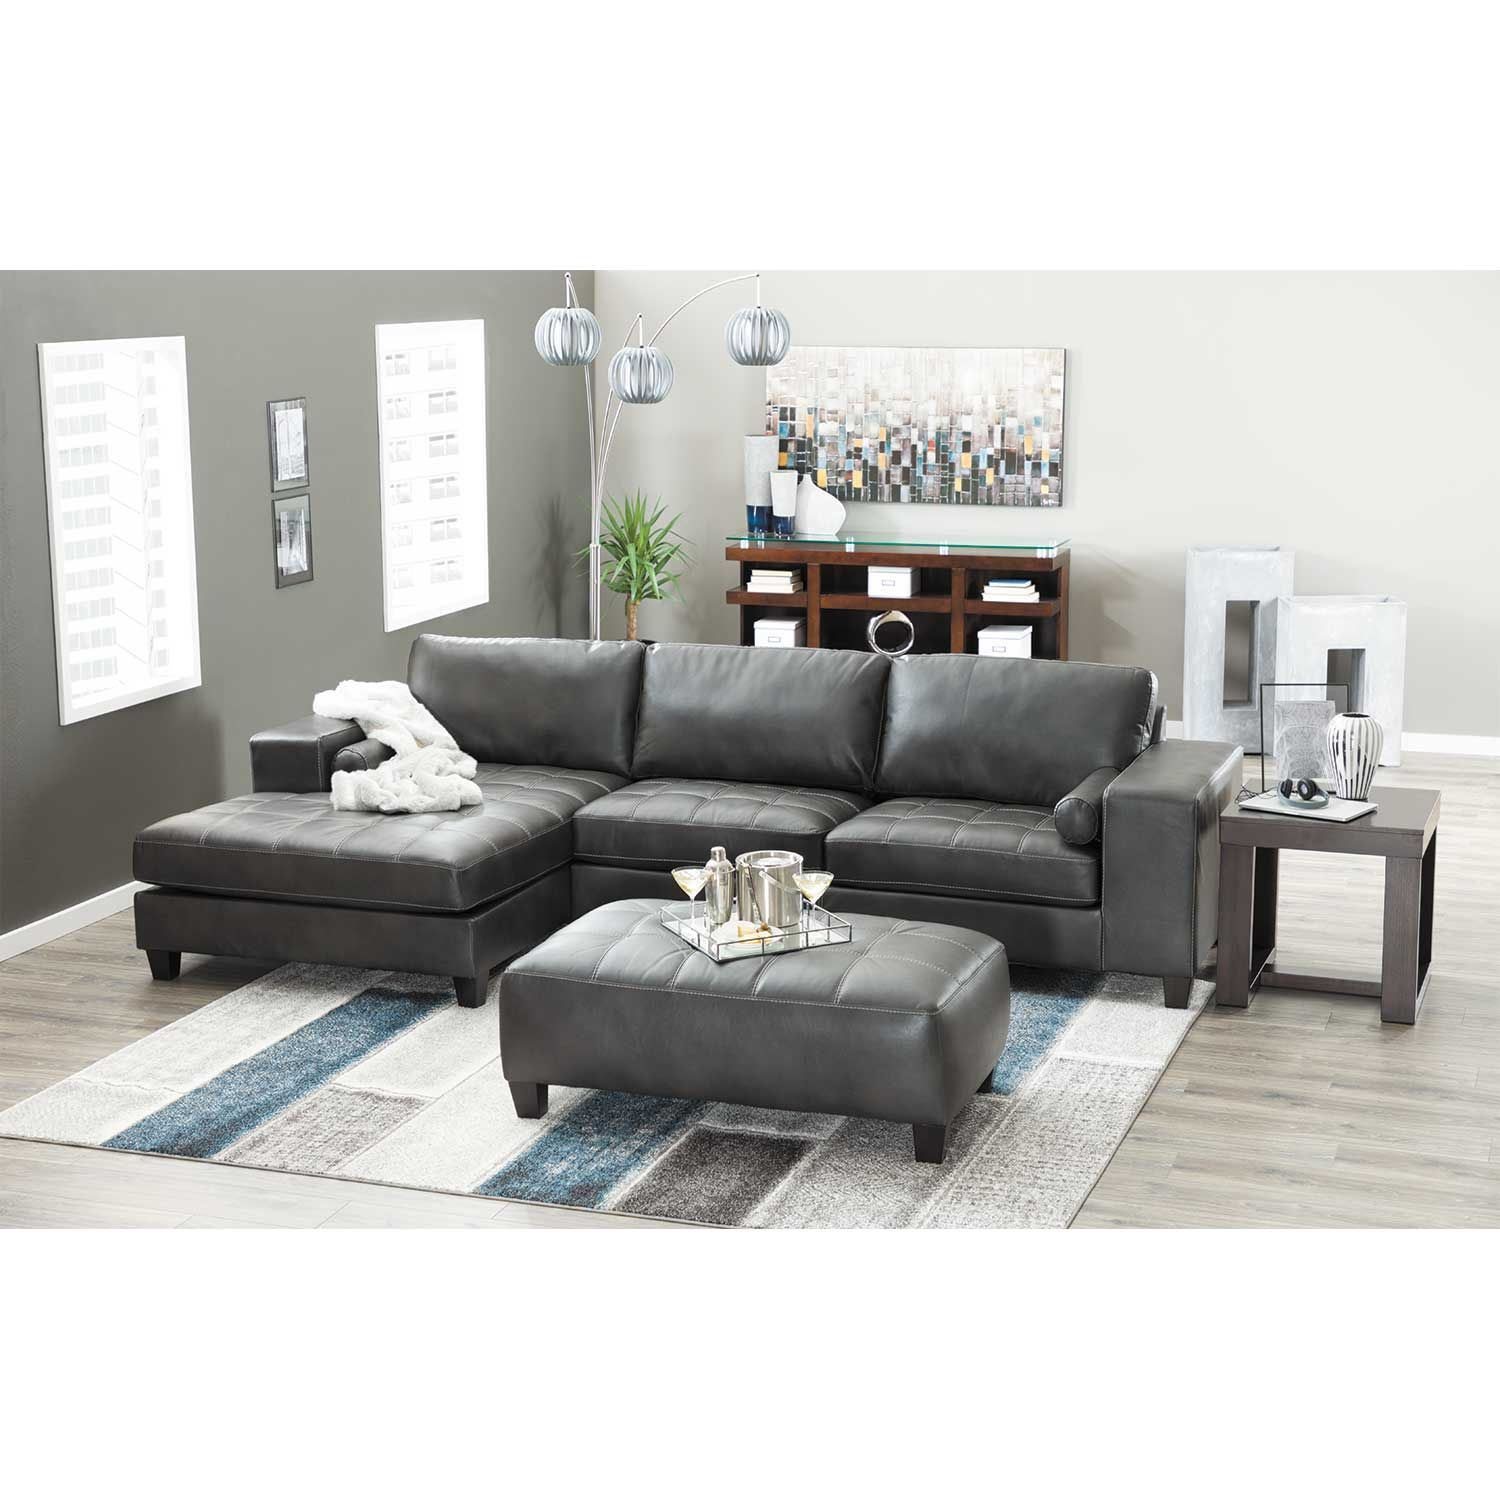 Nokomis 2 Piece Sectional With Raf Chaise 8770117